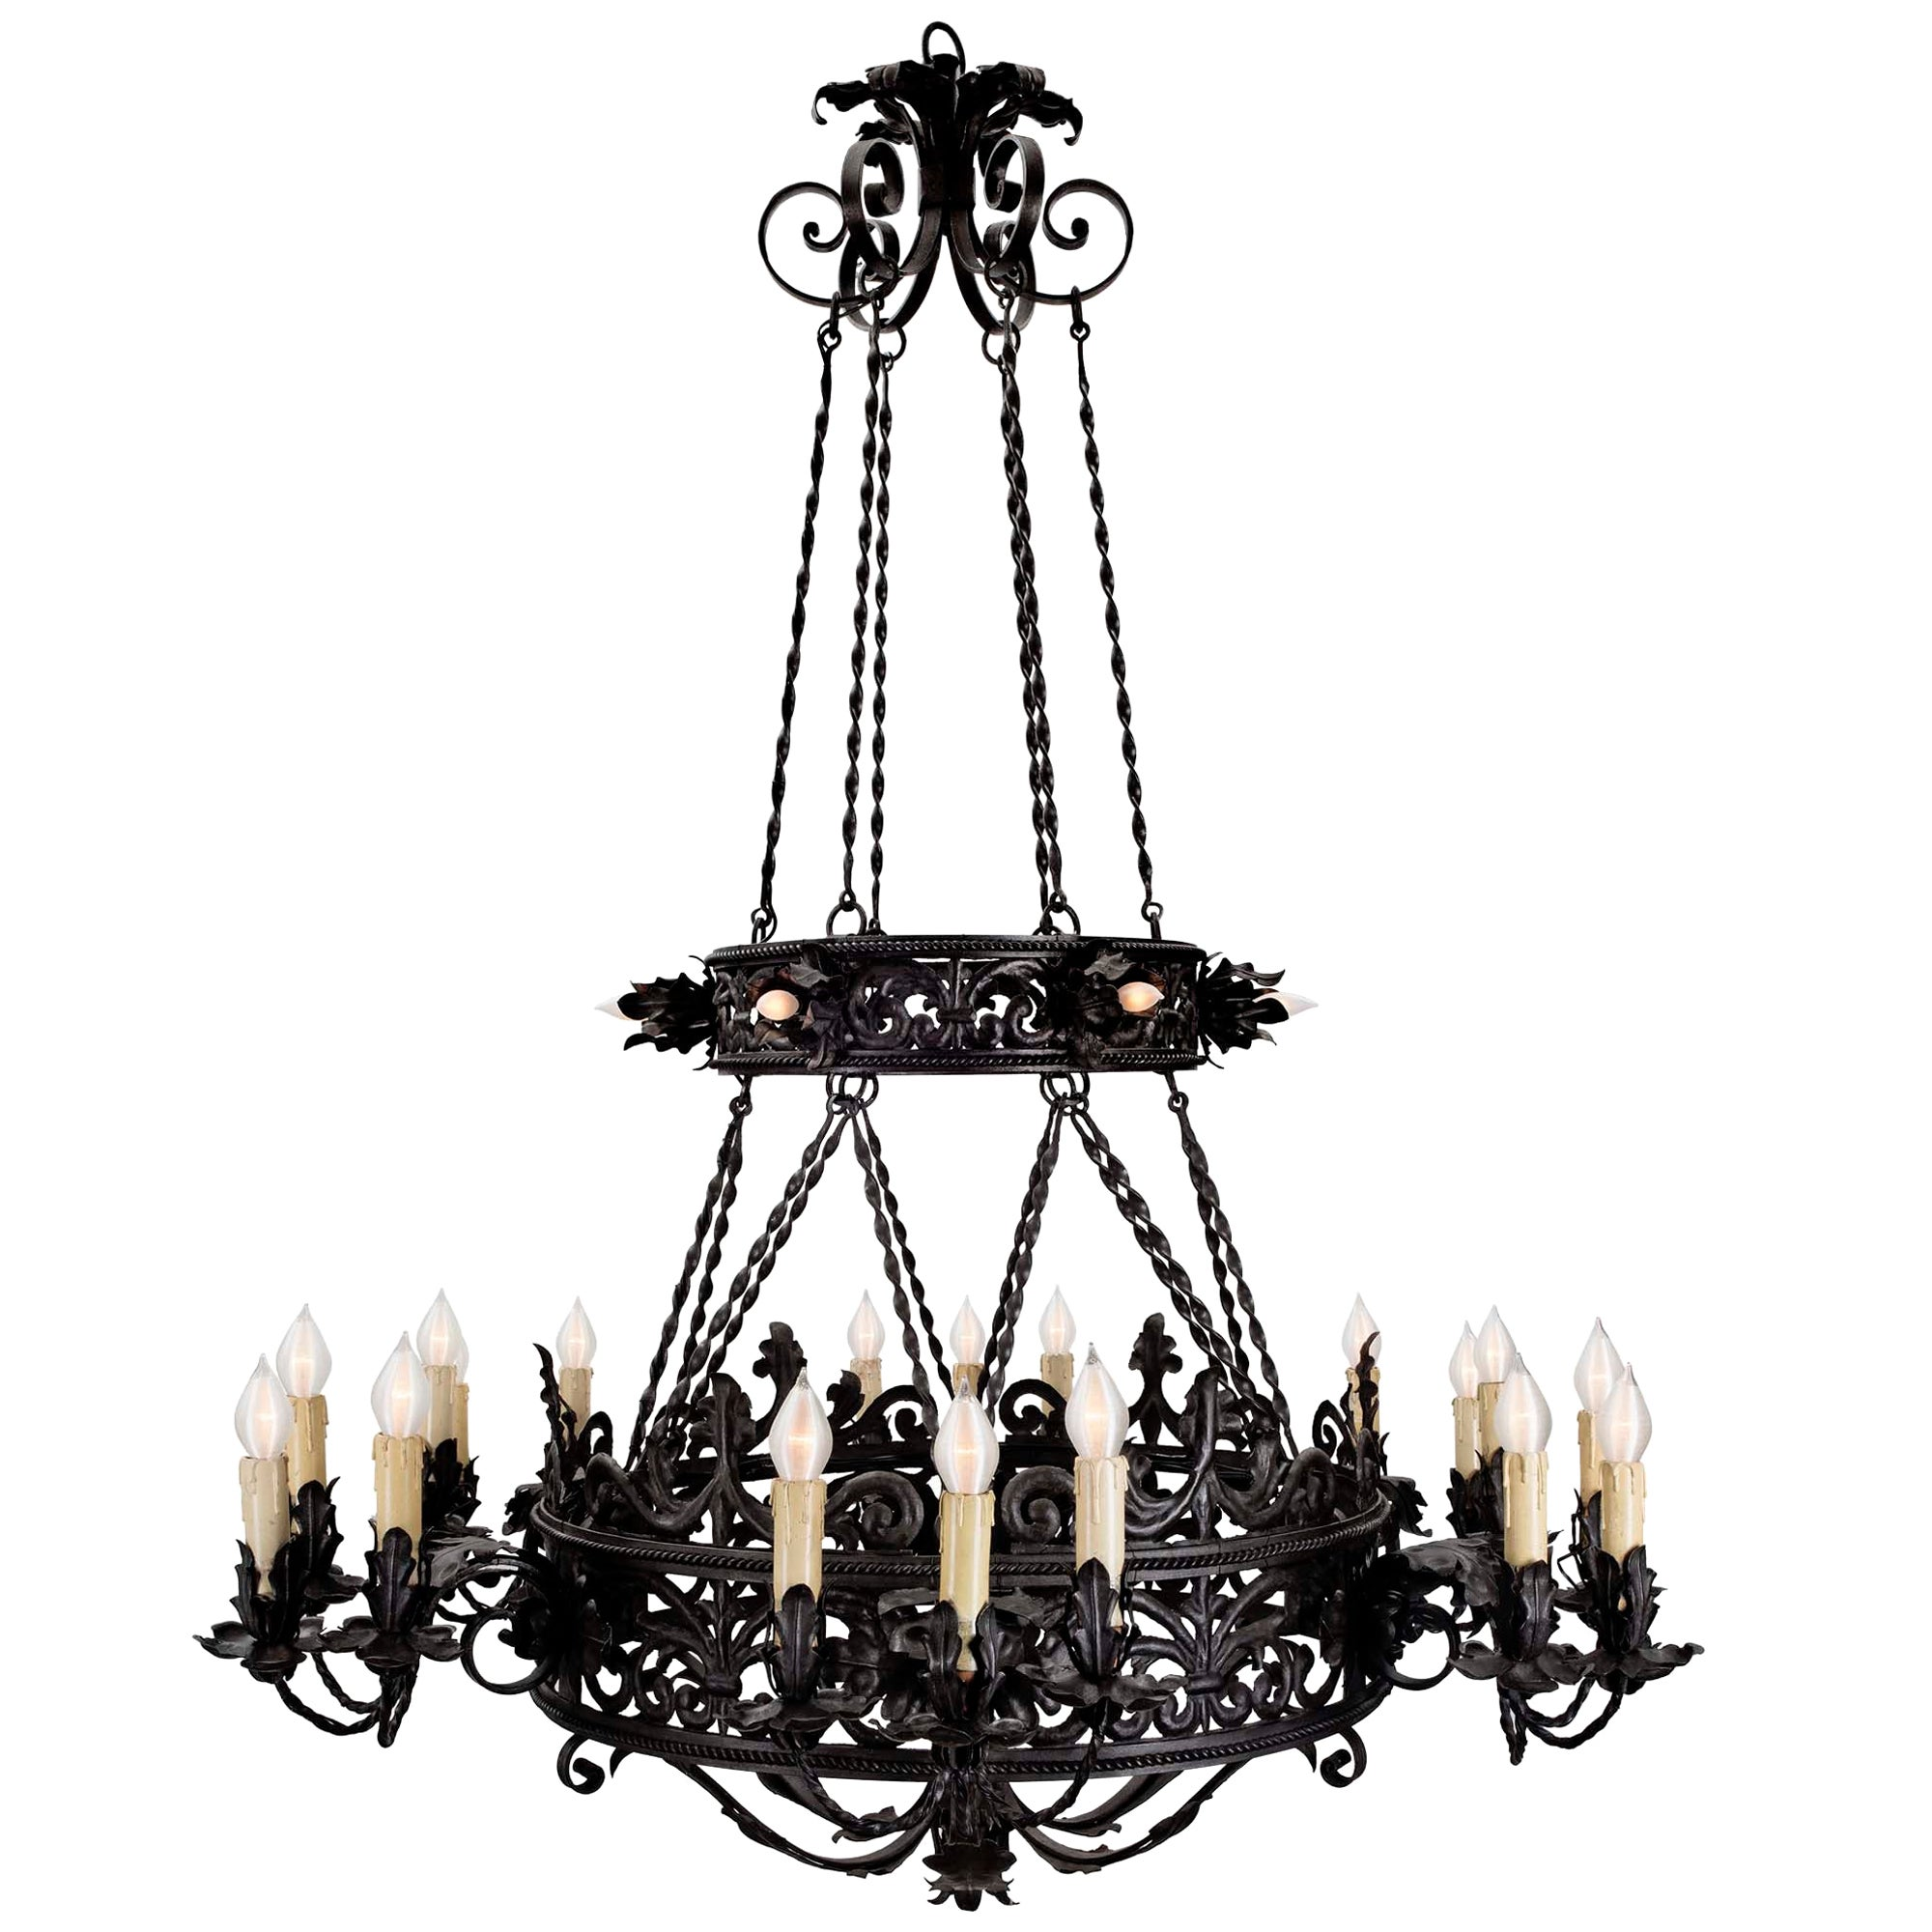 French Mid-19th Century Patinated Wrought Iron 24-Light Chandelier